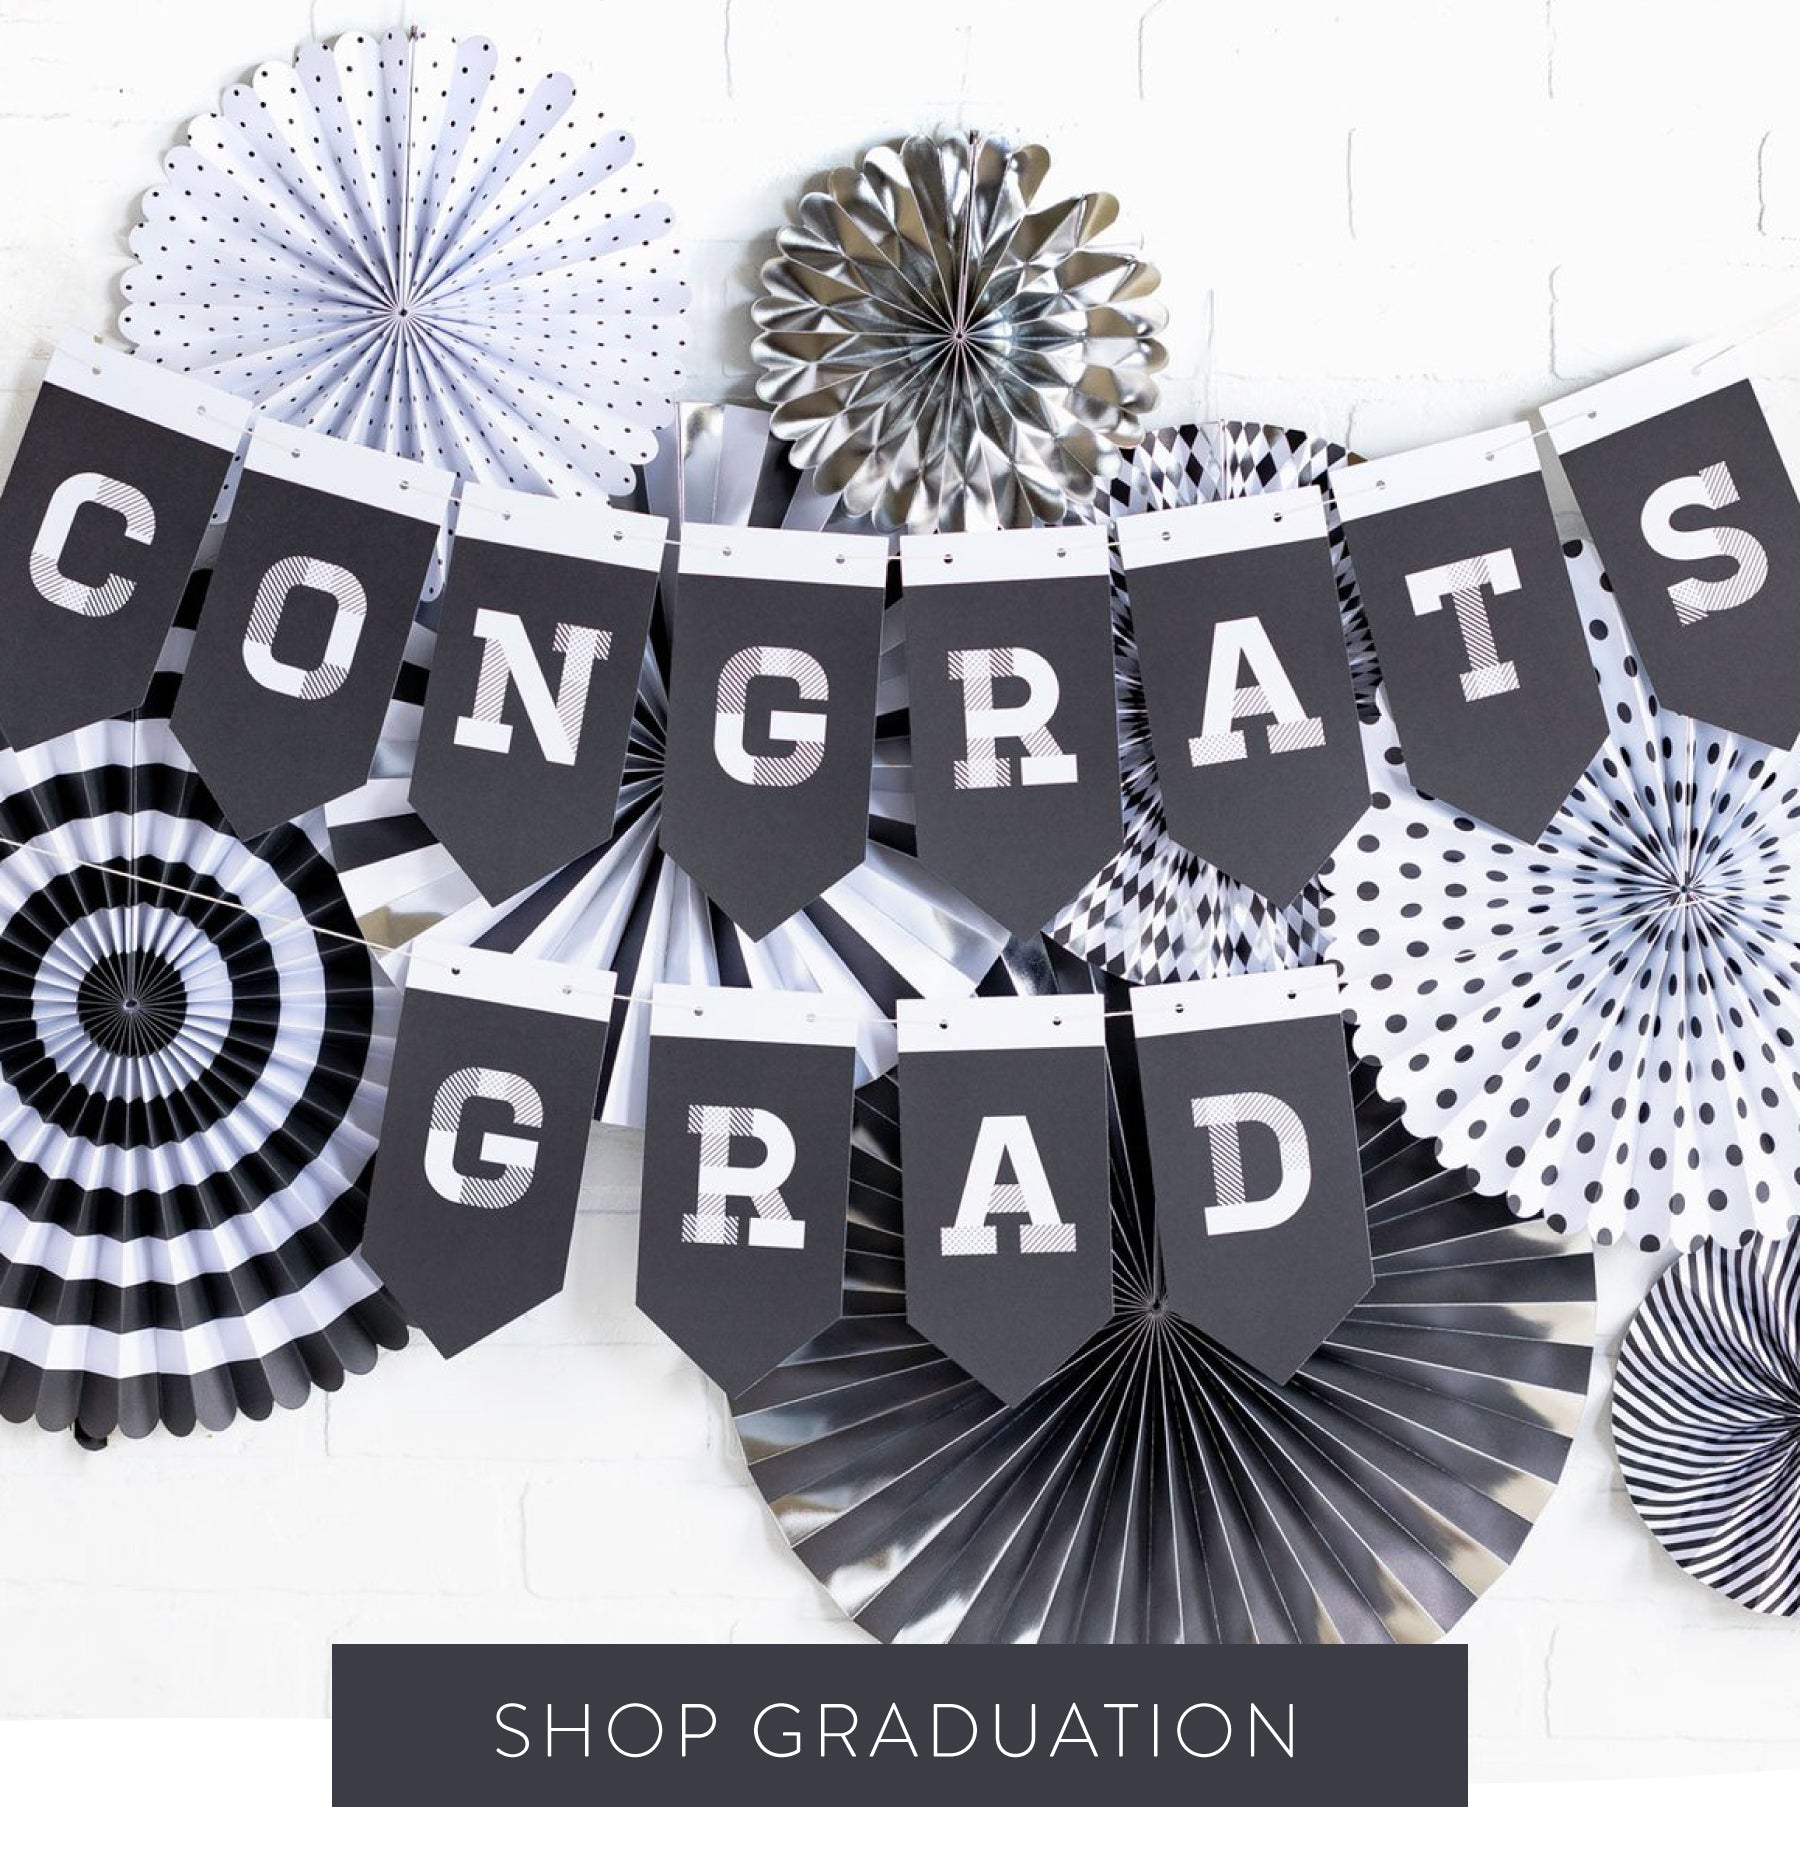 Shop for Graduation Party Supplies